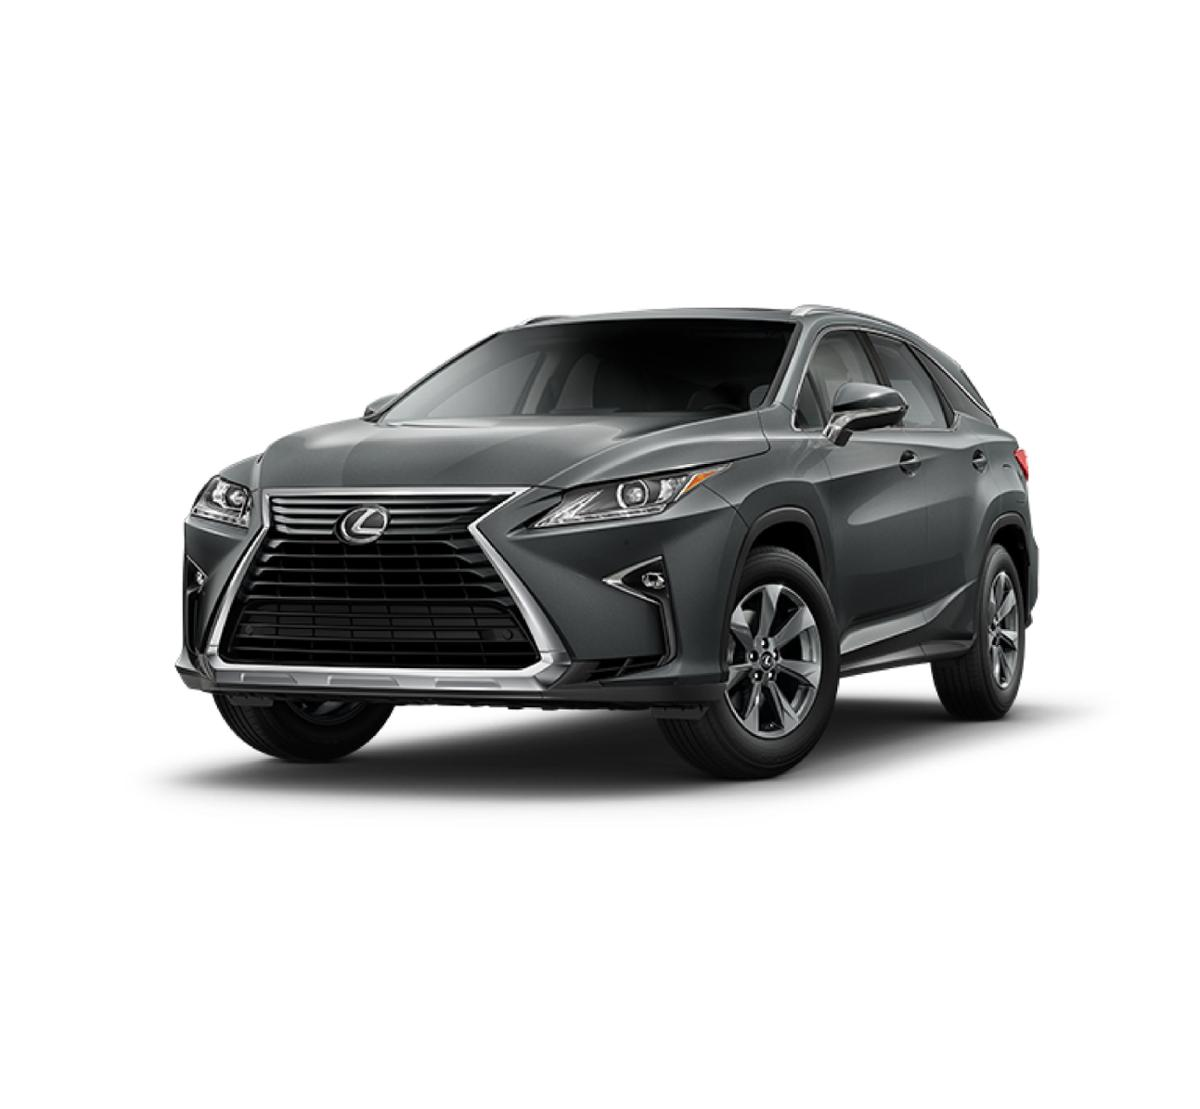 2018 Lexus RX 350L Vehicle Photo in El Monte, CA 91731